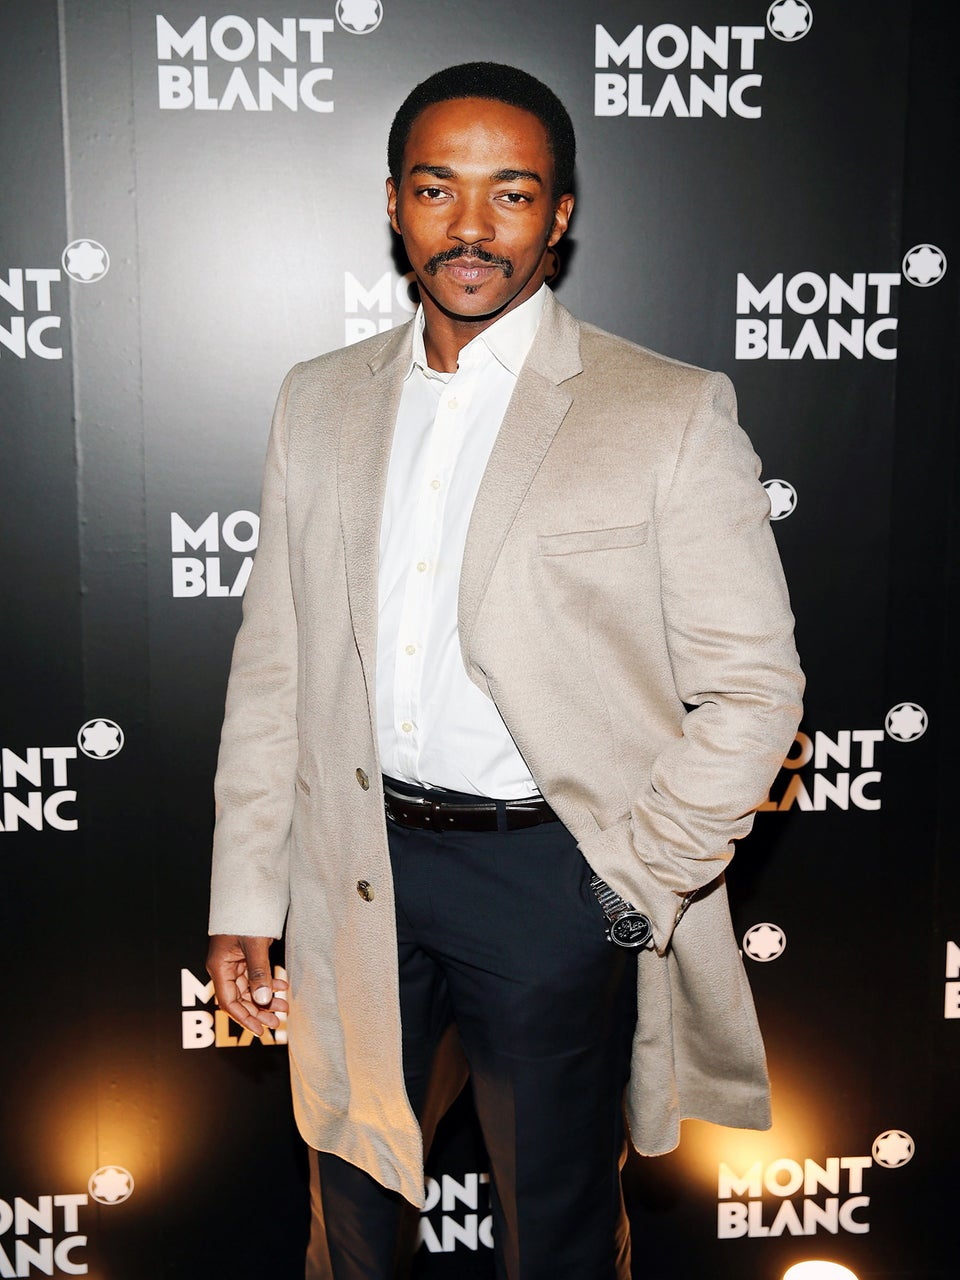 Coffee Talk: Anthony Mackie Arrested and Charged with Driving While Intoxicated